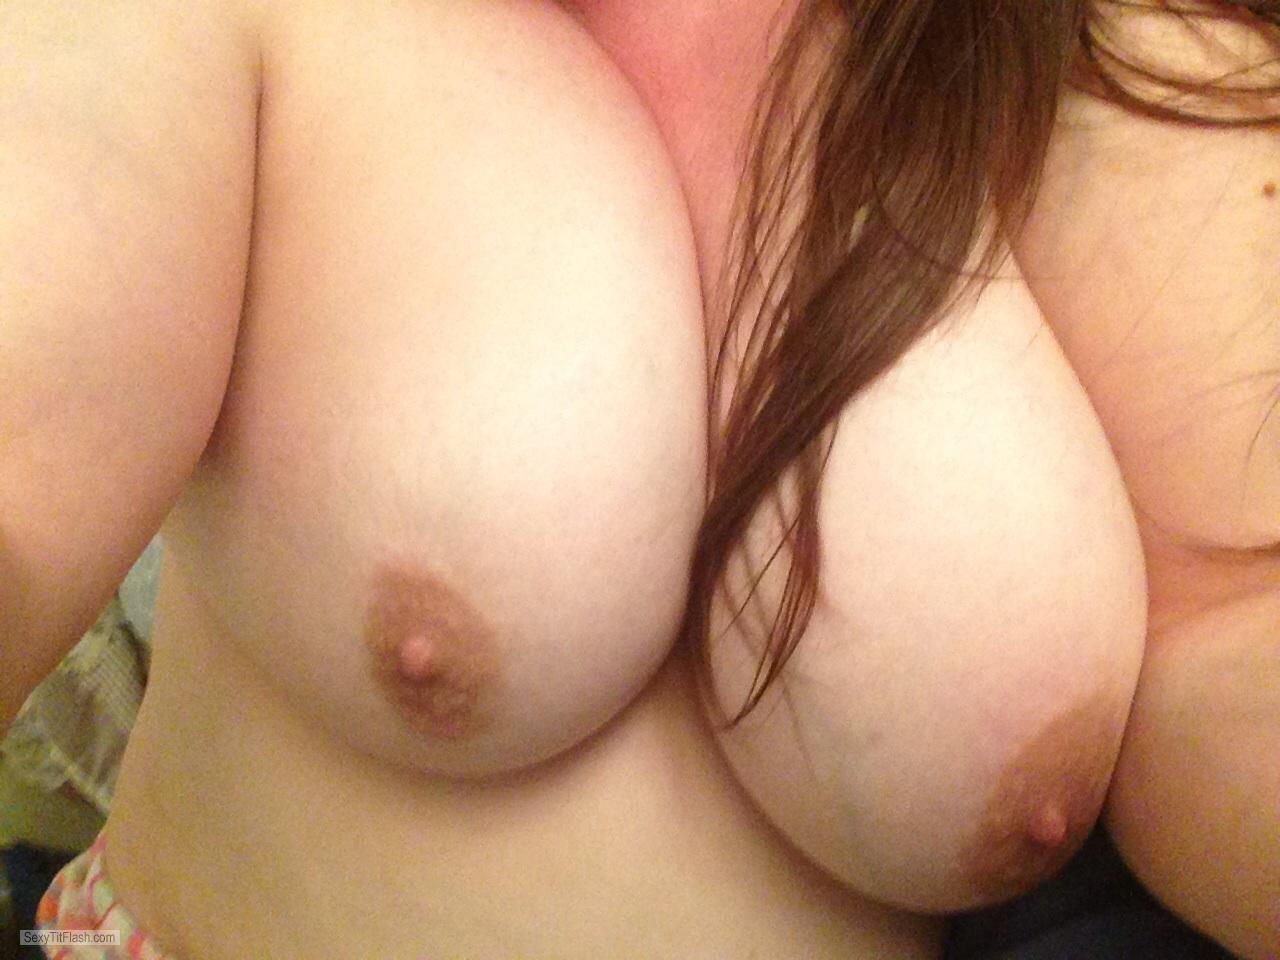 Tit Flash: My Very Big Tits (Selfie) - Rach.   Aka Cp from United States